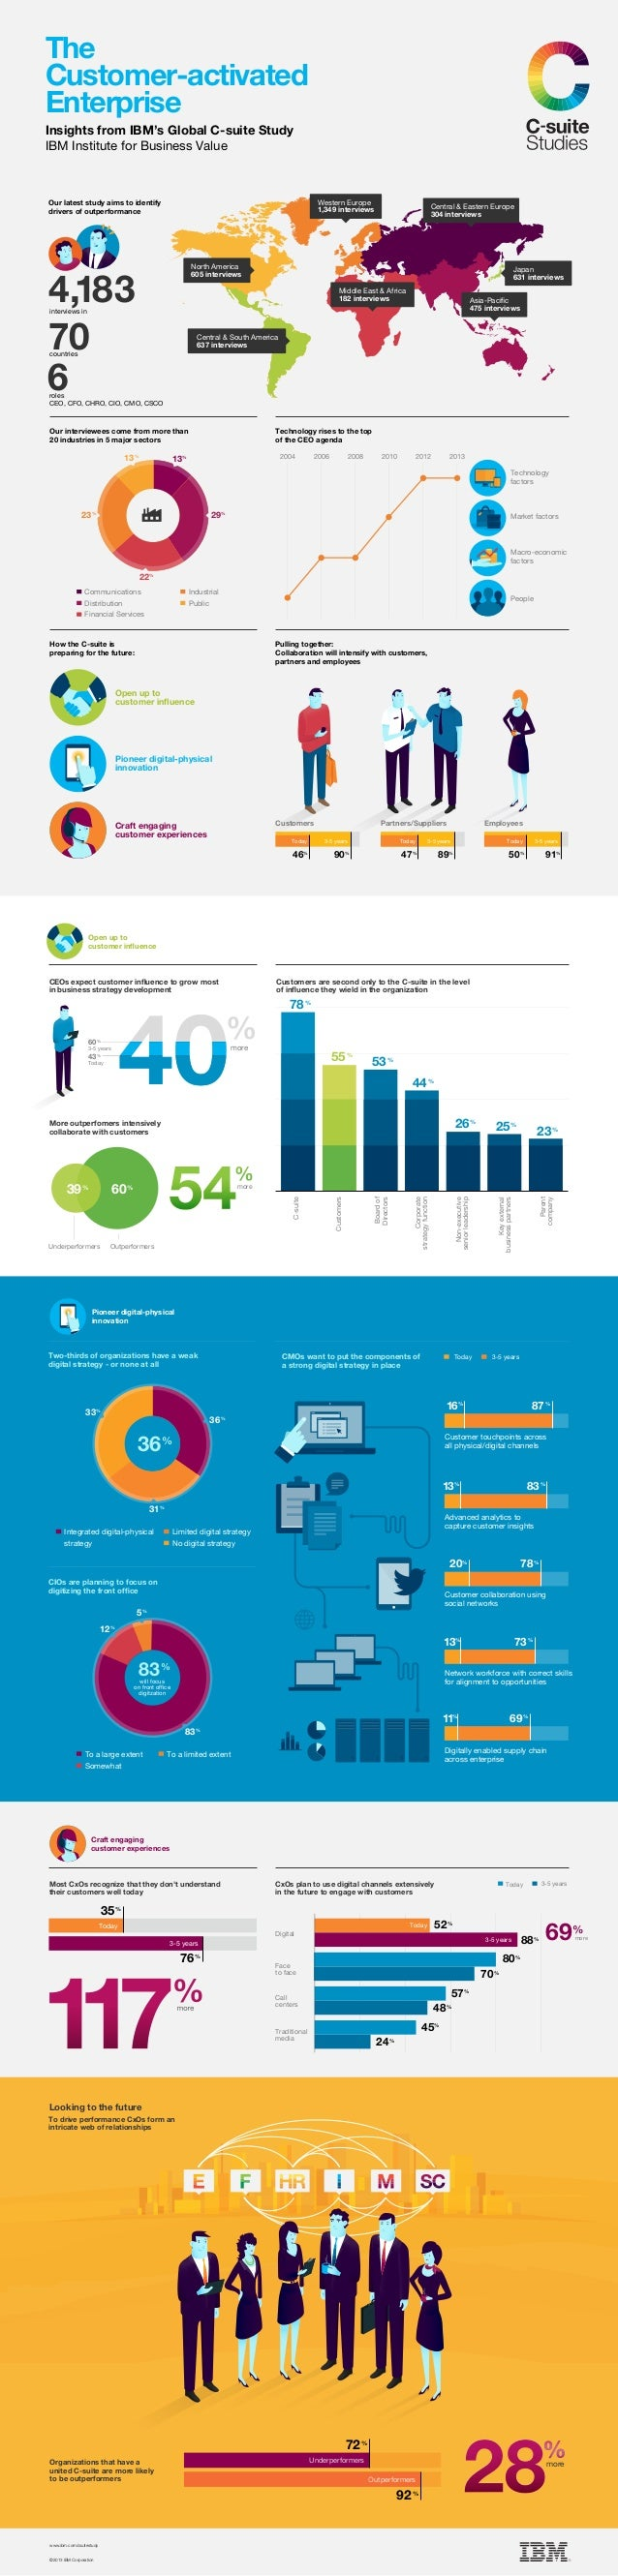 70 6 more 40% 4040 54 ©2013 IBM Corporation www.ibm.com/csuitestudy Our latest study aims to identify drivers of outperfor...